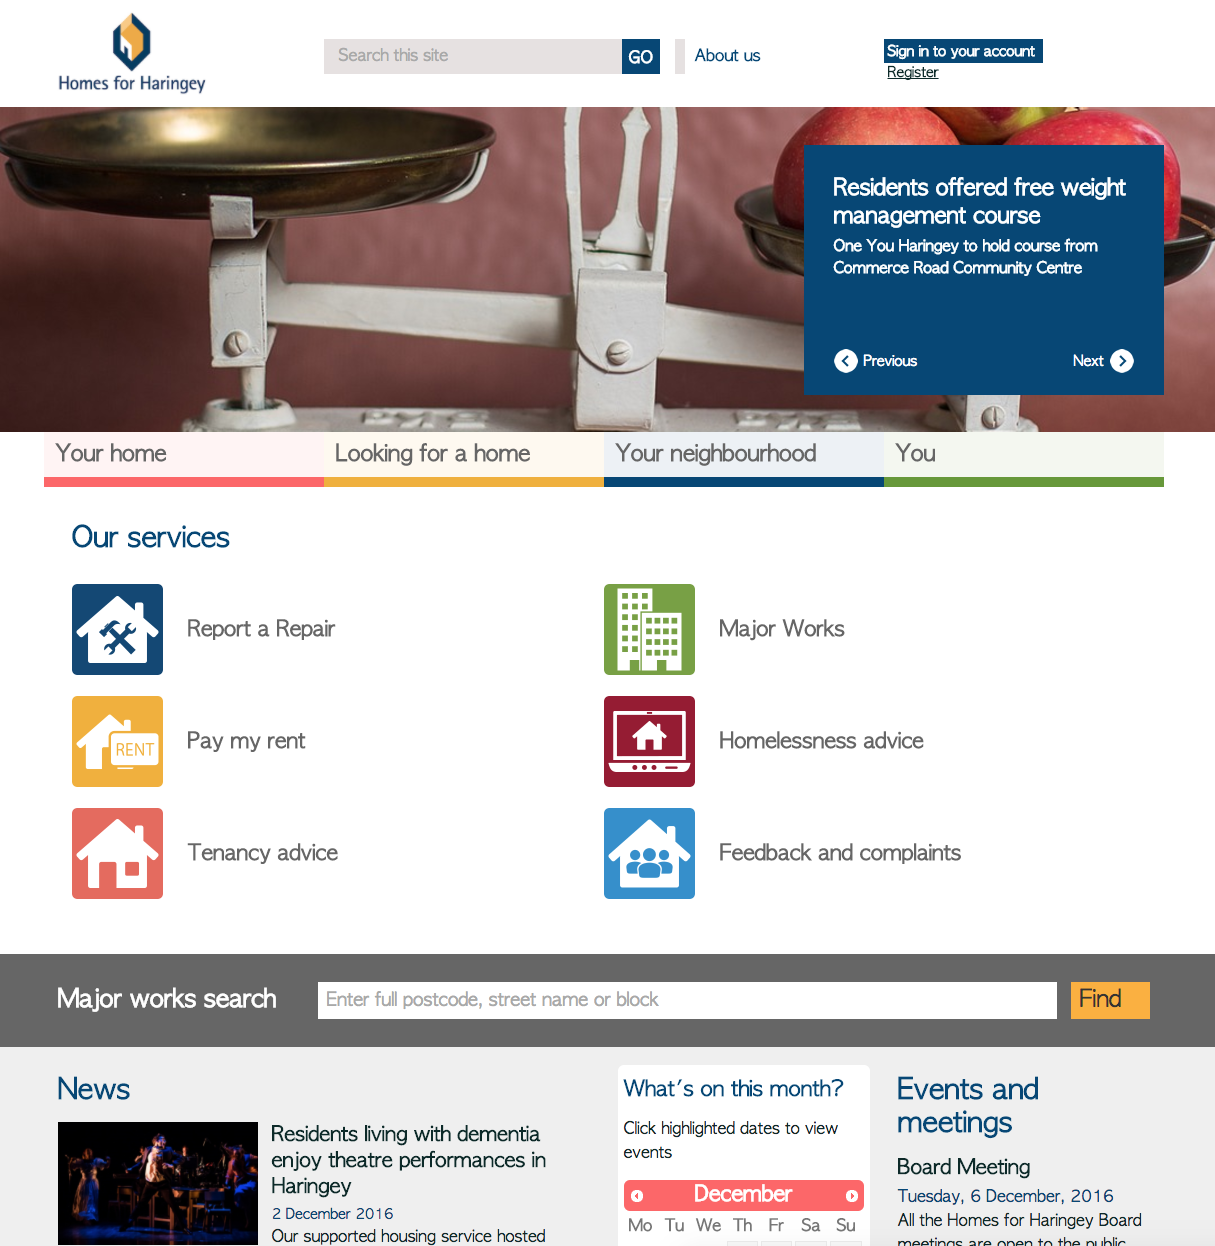 Homes for Haringey homepage